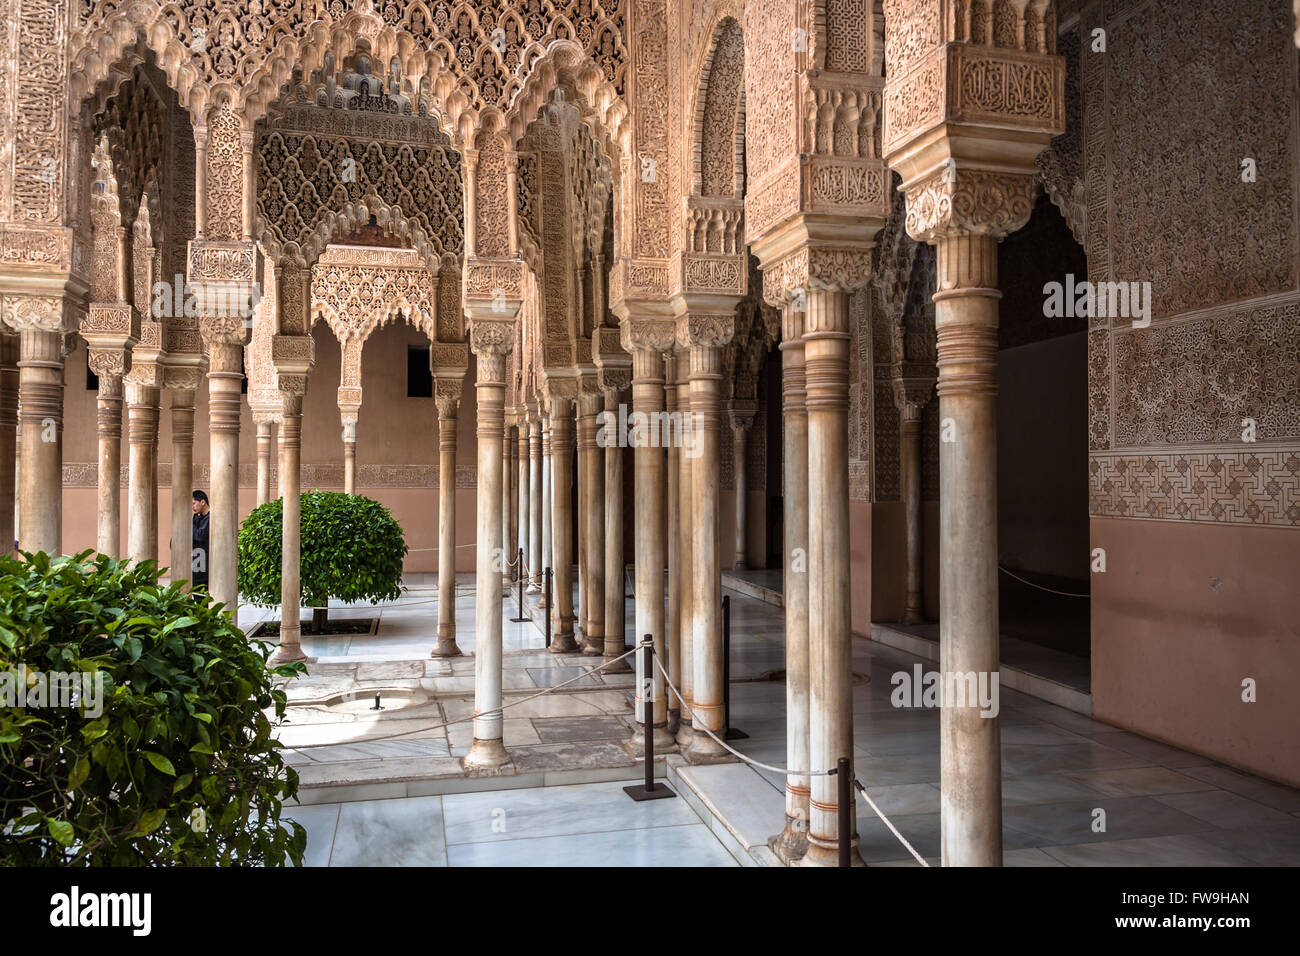 Moresque ornaments in court of lion from Alhambra Islamic Royal Palace, Granada, Spain - Stock Image